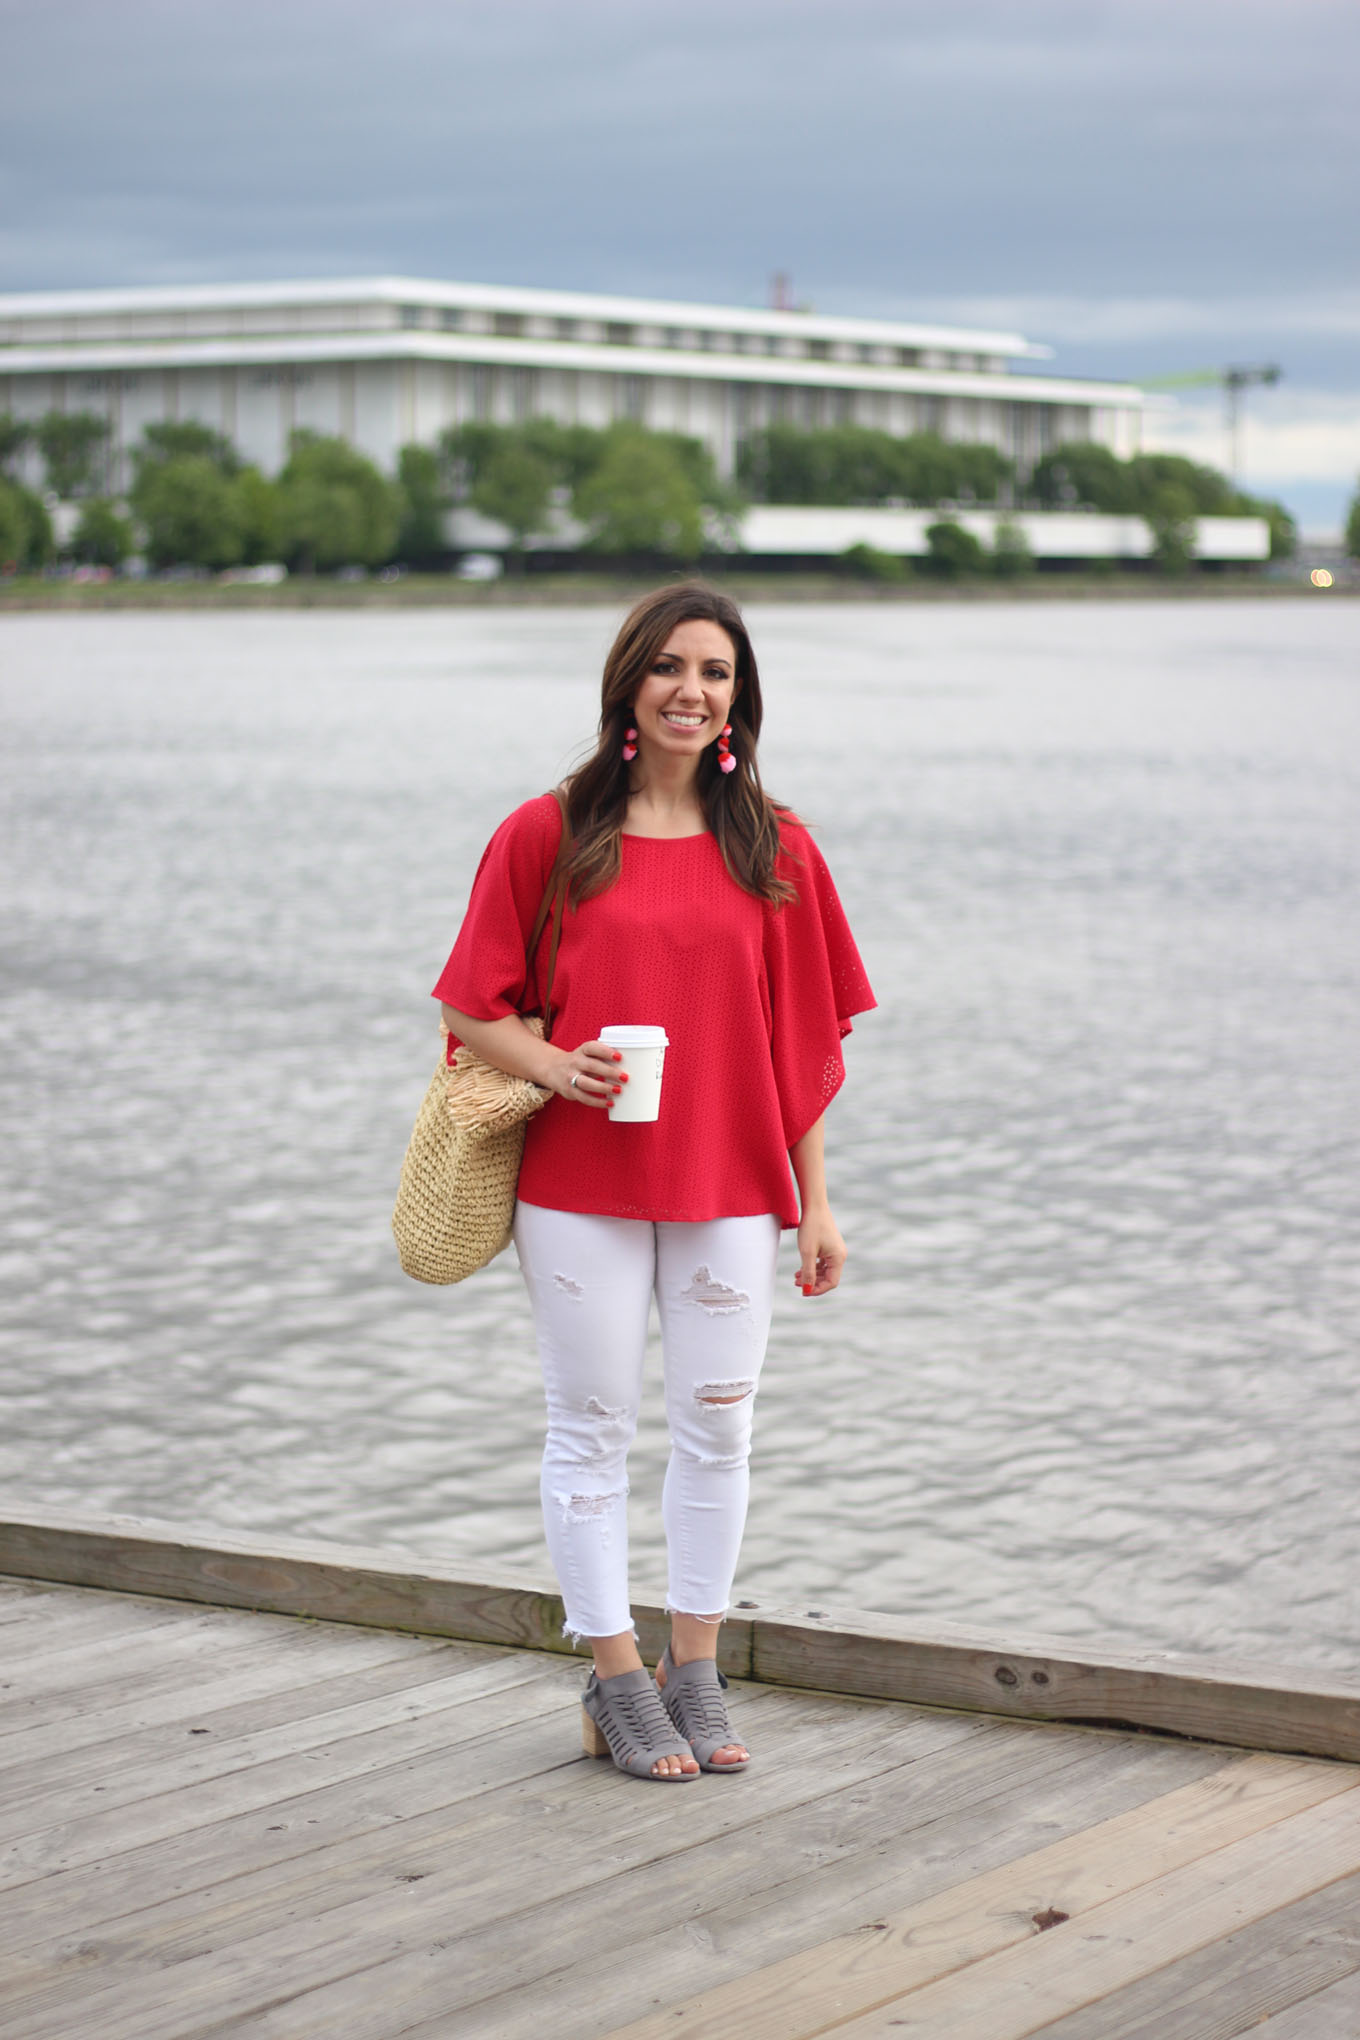 Lifestyle blogger Roxanne of Glass of Glam wearing a red Cuddy Studios top, Baublebar earrings, a straw tote, and Old Navy Denim